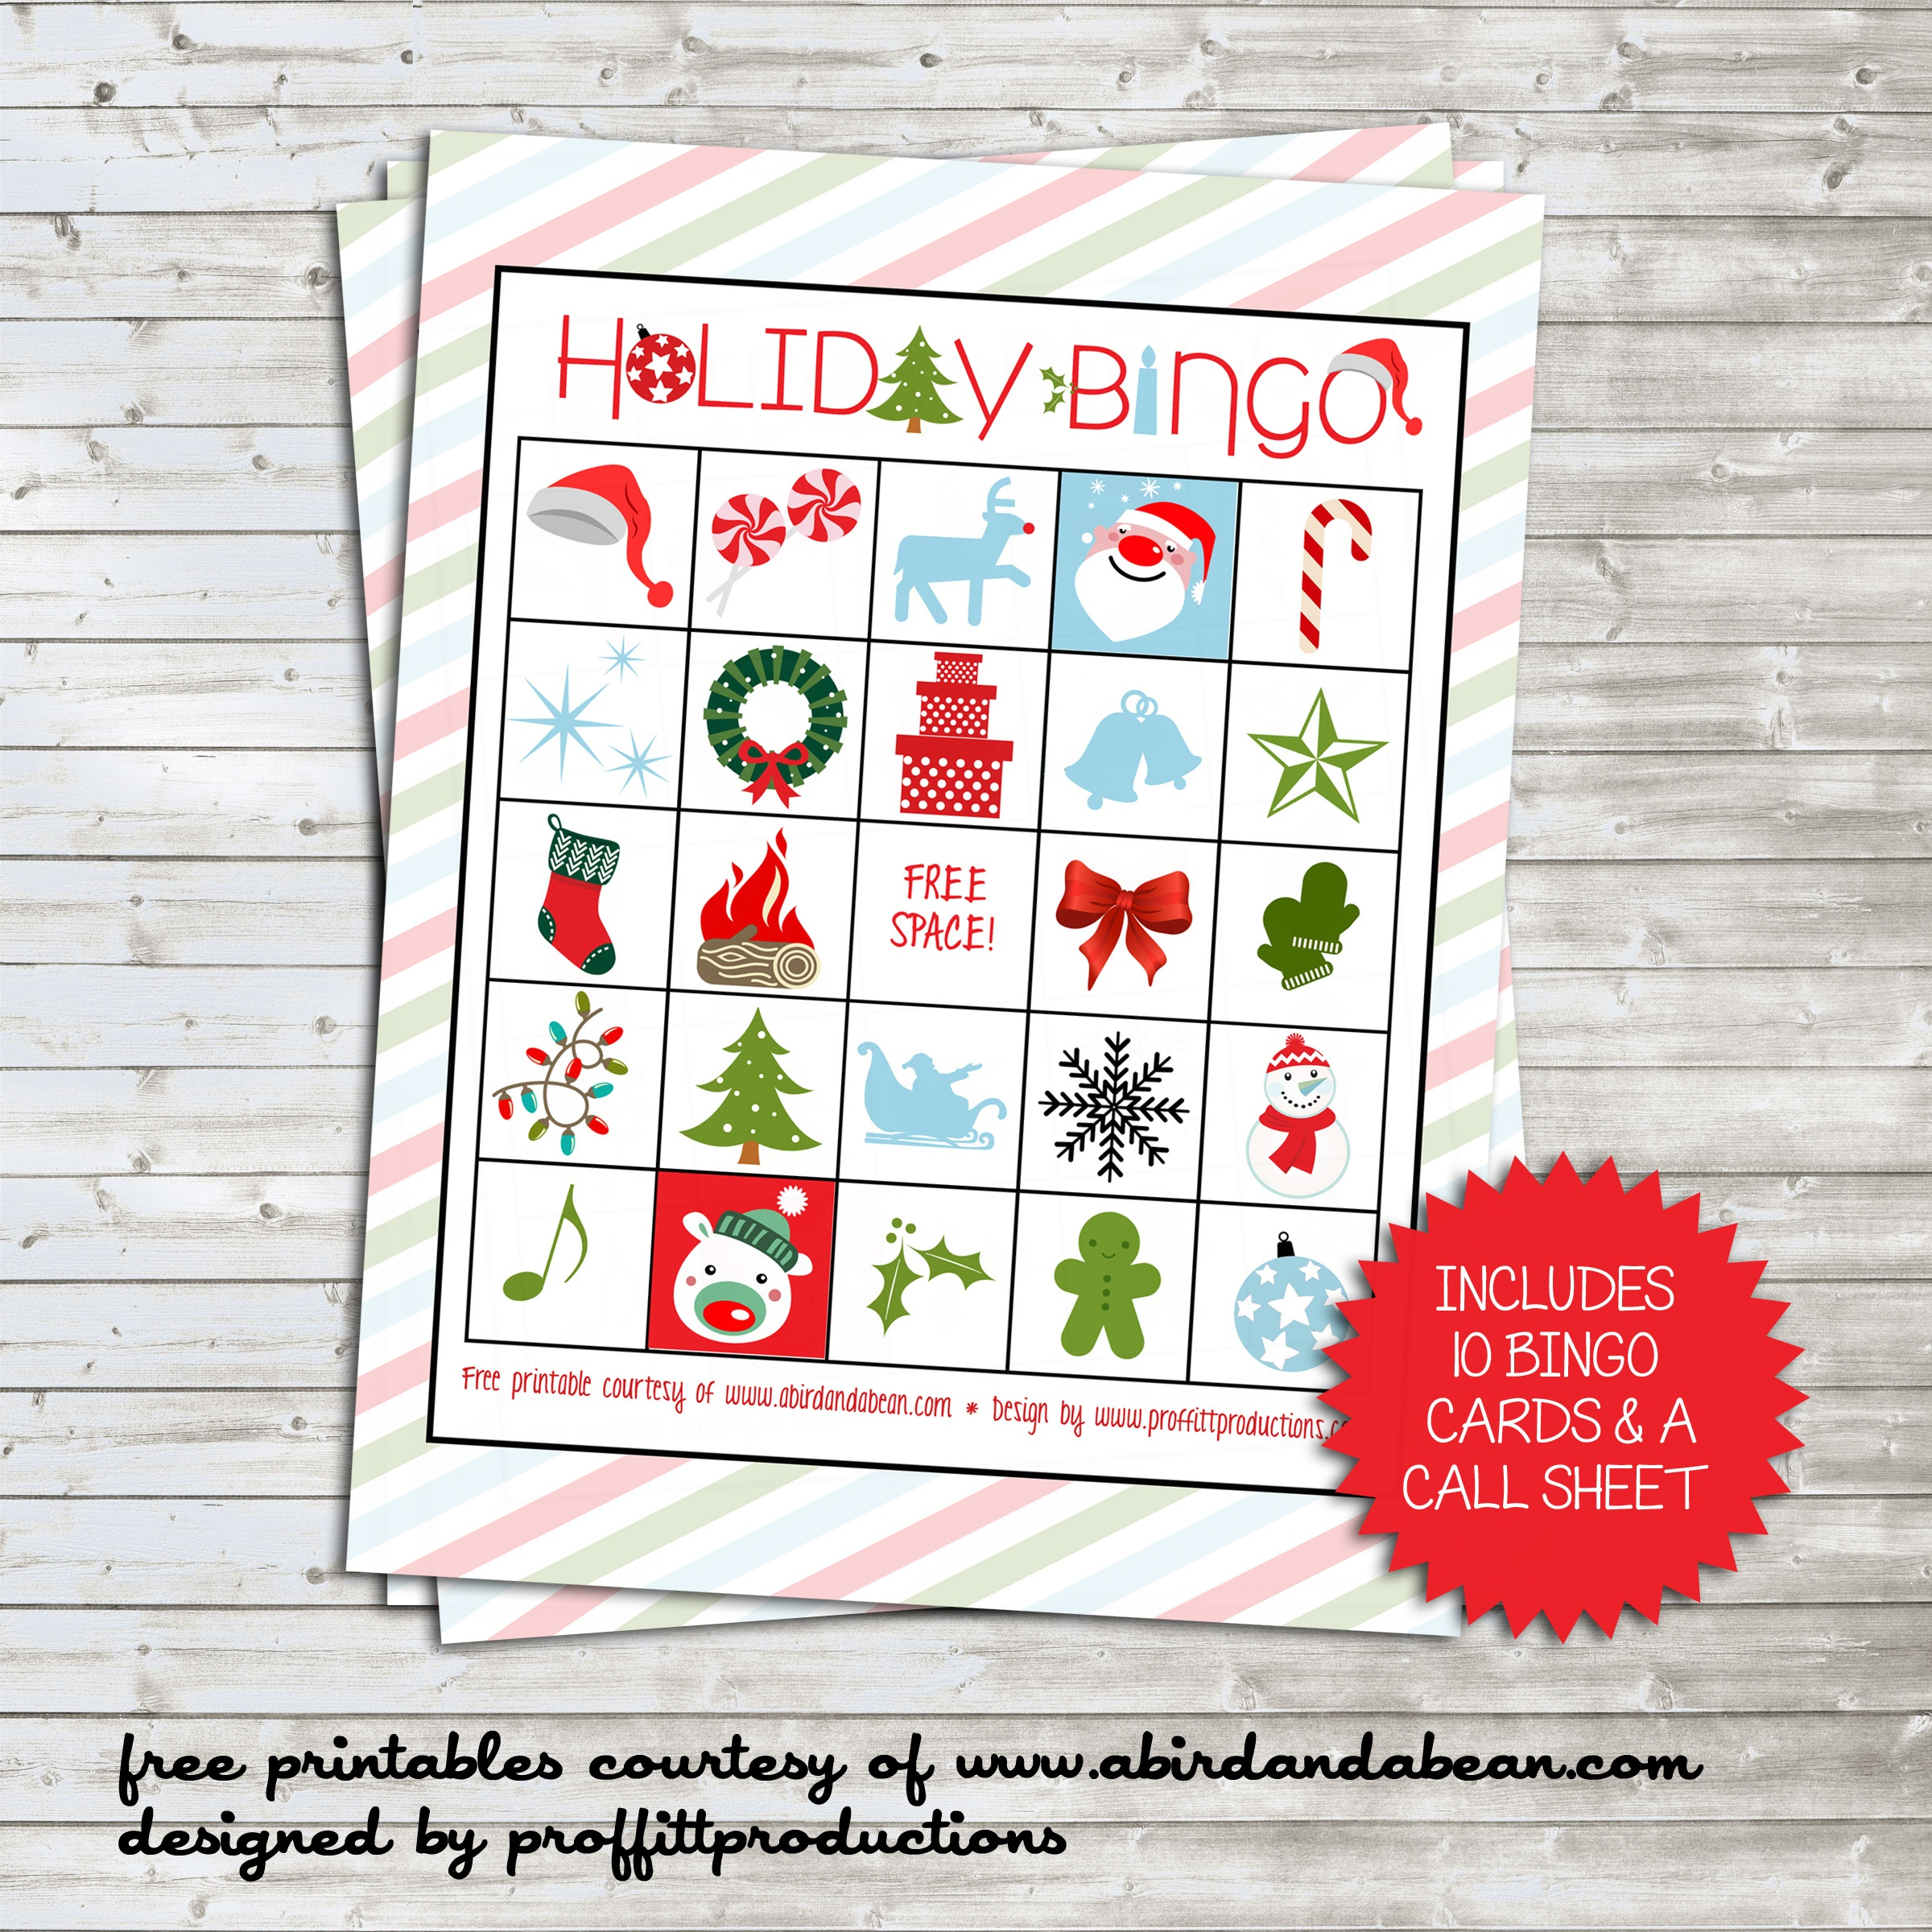 Holiday Bingo Set :: Free Printable - Free Printable Bingo Cards And Call Sheet